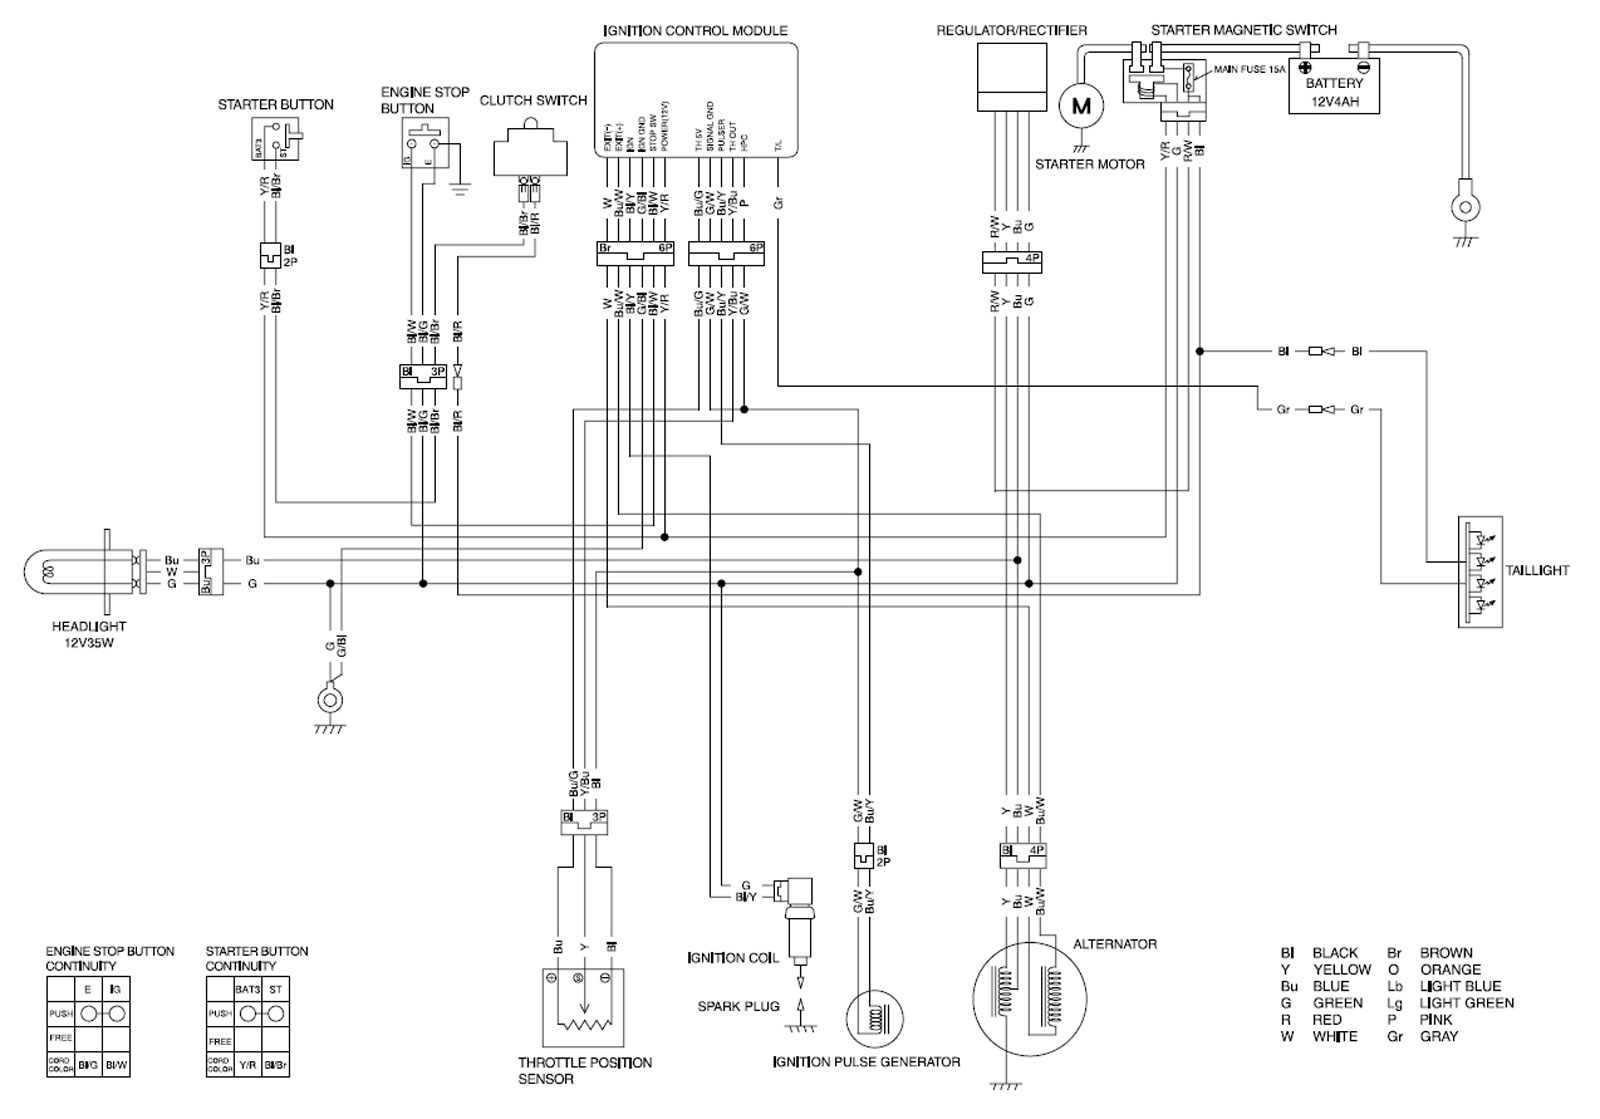 honda 250x wiring diagram on honda download wirning diagrams 1997 honda civic headlight wiring diagram at bayanpartner.co